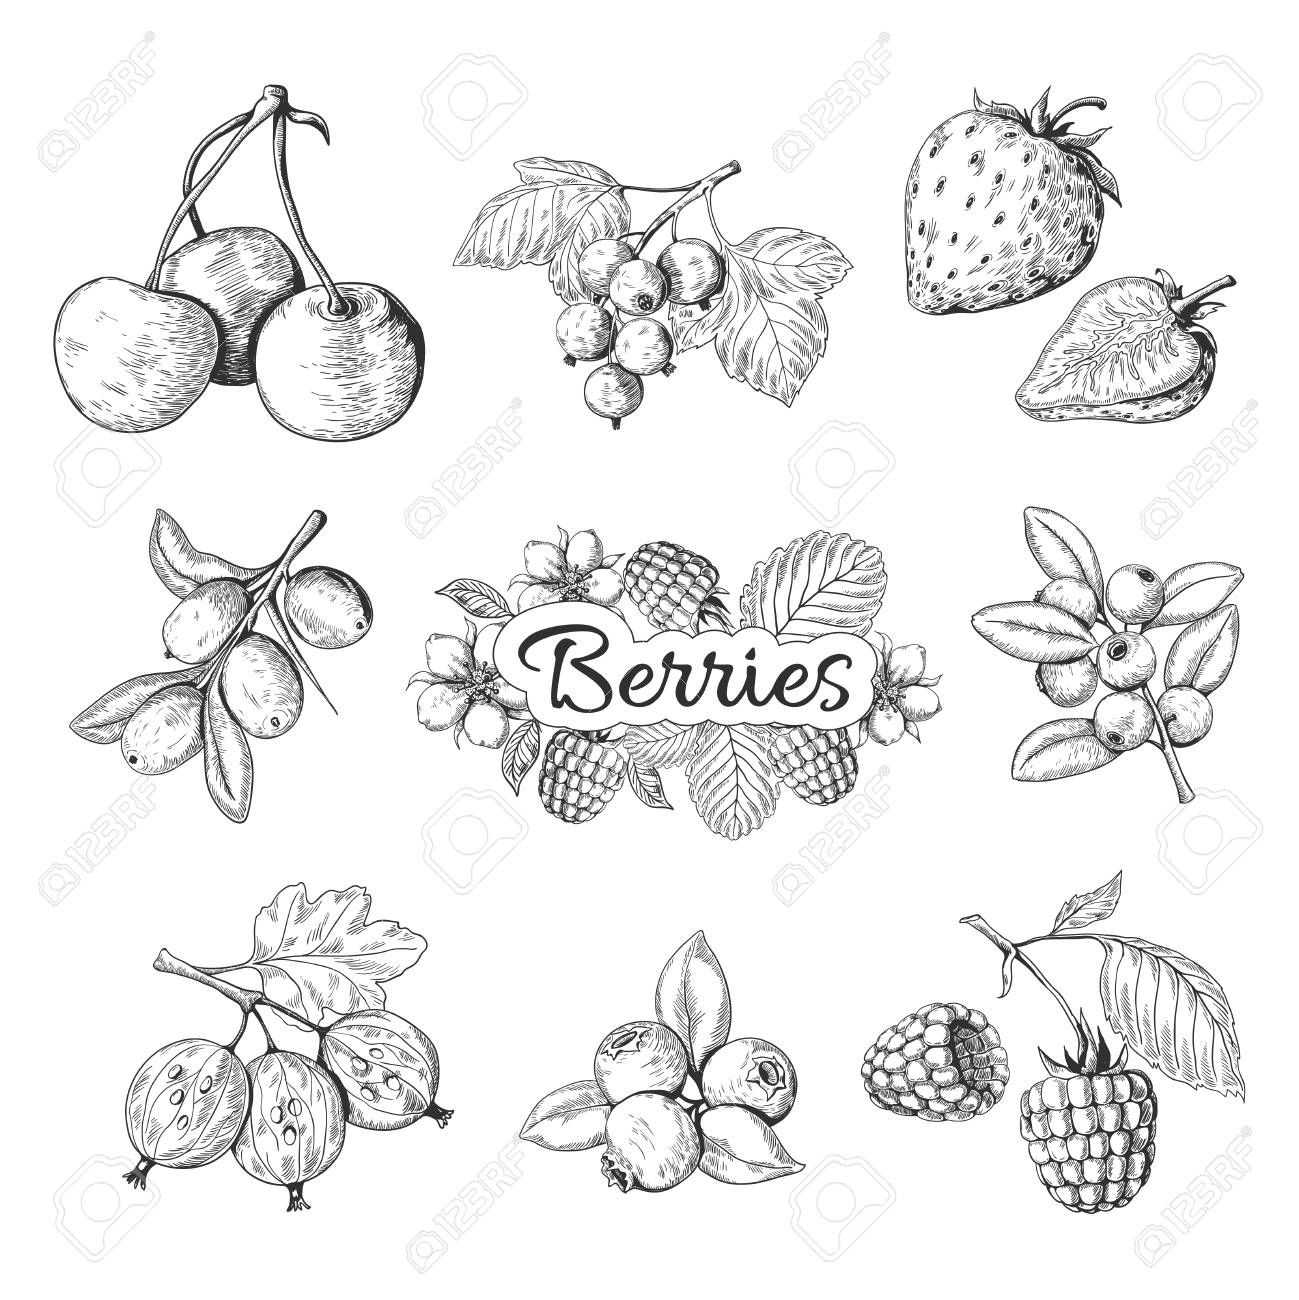 Hand drawn berries. Cherry blueberry strawberry blackberry vintage drawing, berry sketch drawing. Vector graphic templates illustration sweet wild nature organic food set - 122318672